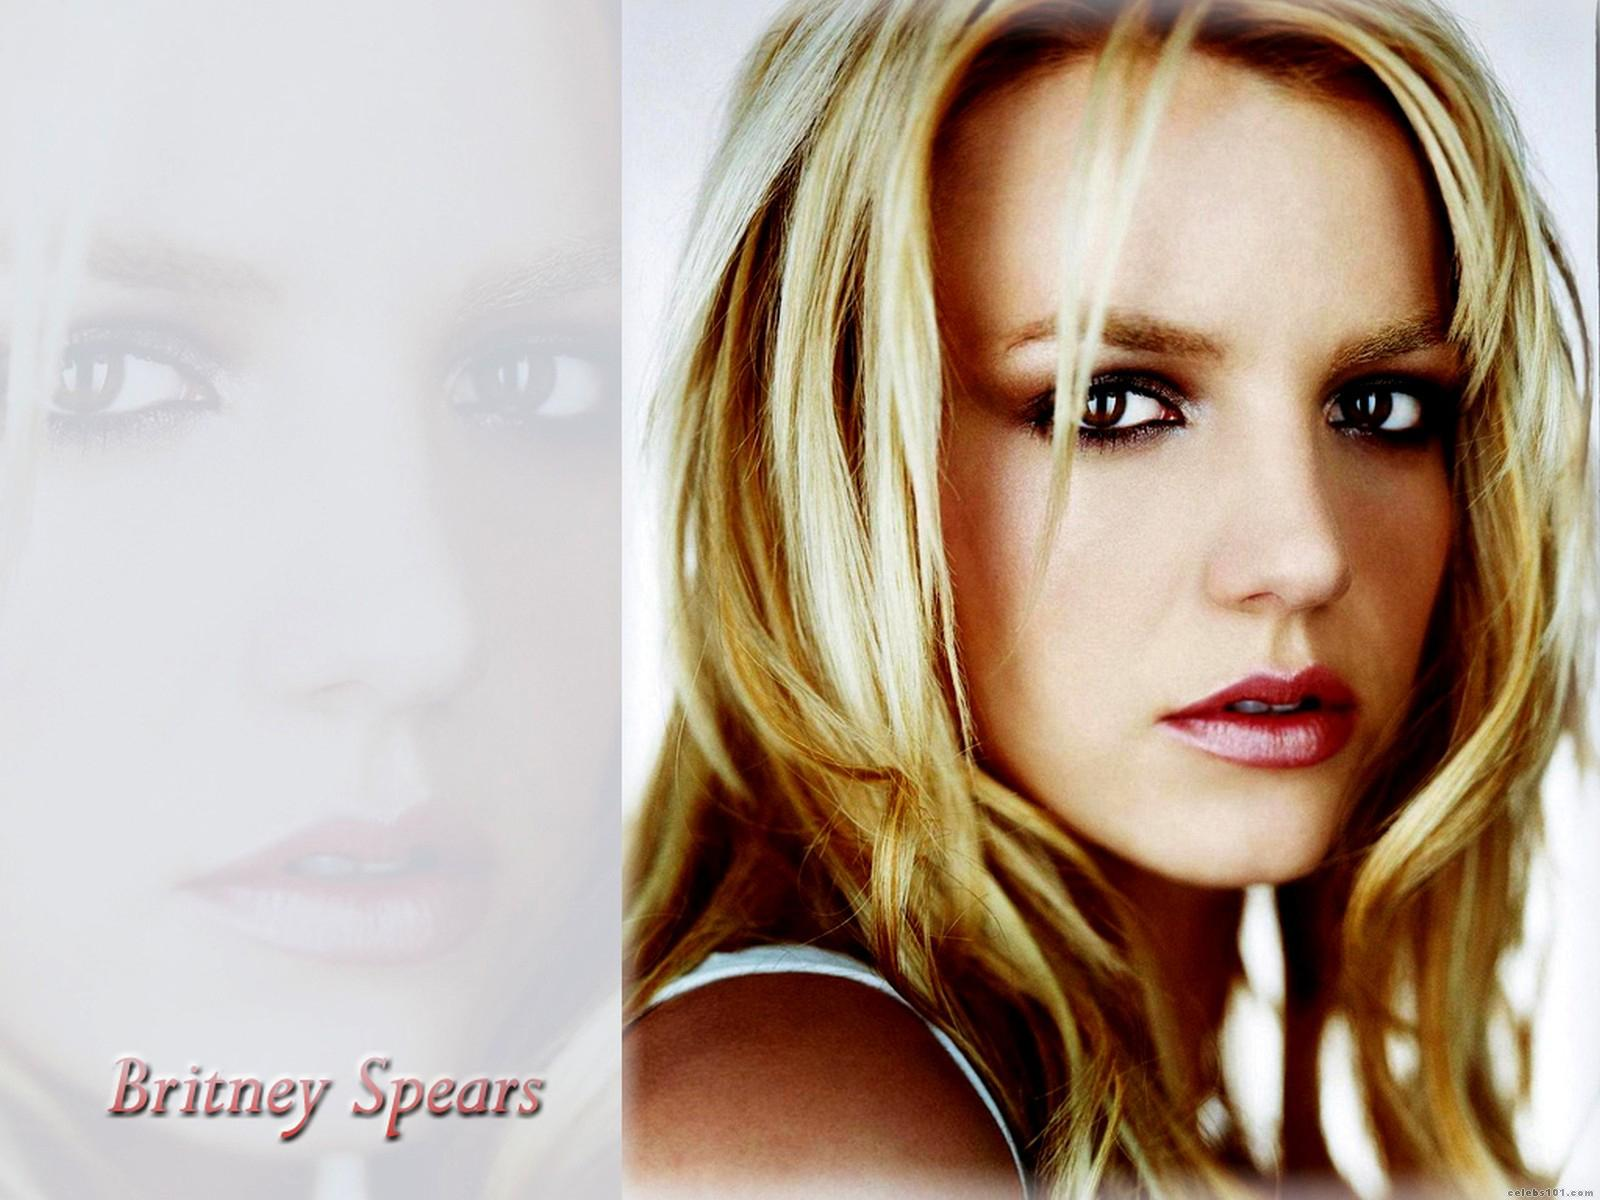 http://1.bp.blogspot.com/-eZxjH3kQmIk/UAmeUuAnRGI/AAAAAAAAGuE/VgJfQvuU7U8/s1600/Best-Britney-Spears-Wallpapers-3.jpg